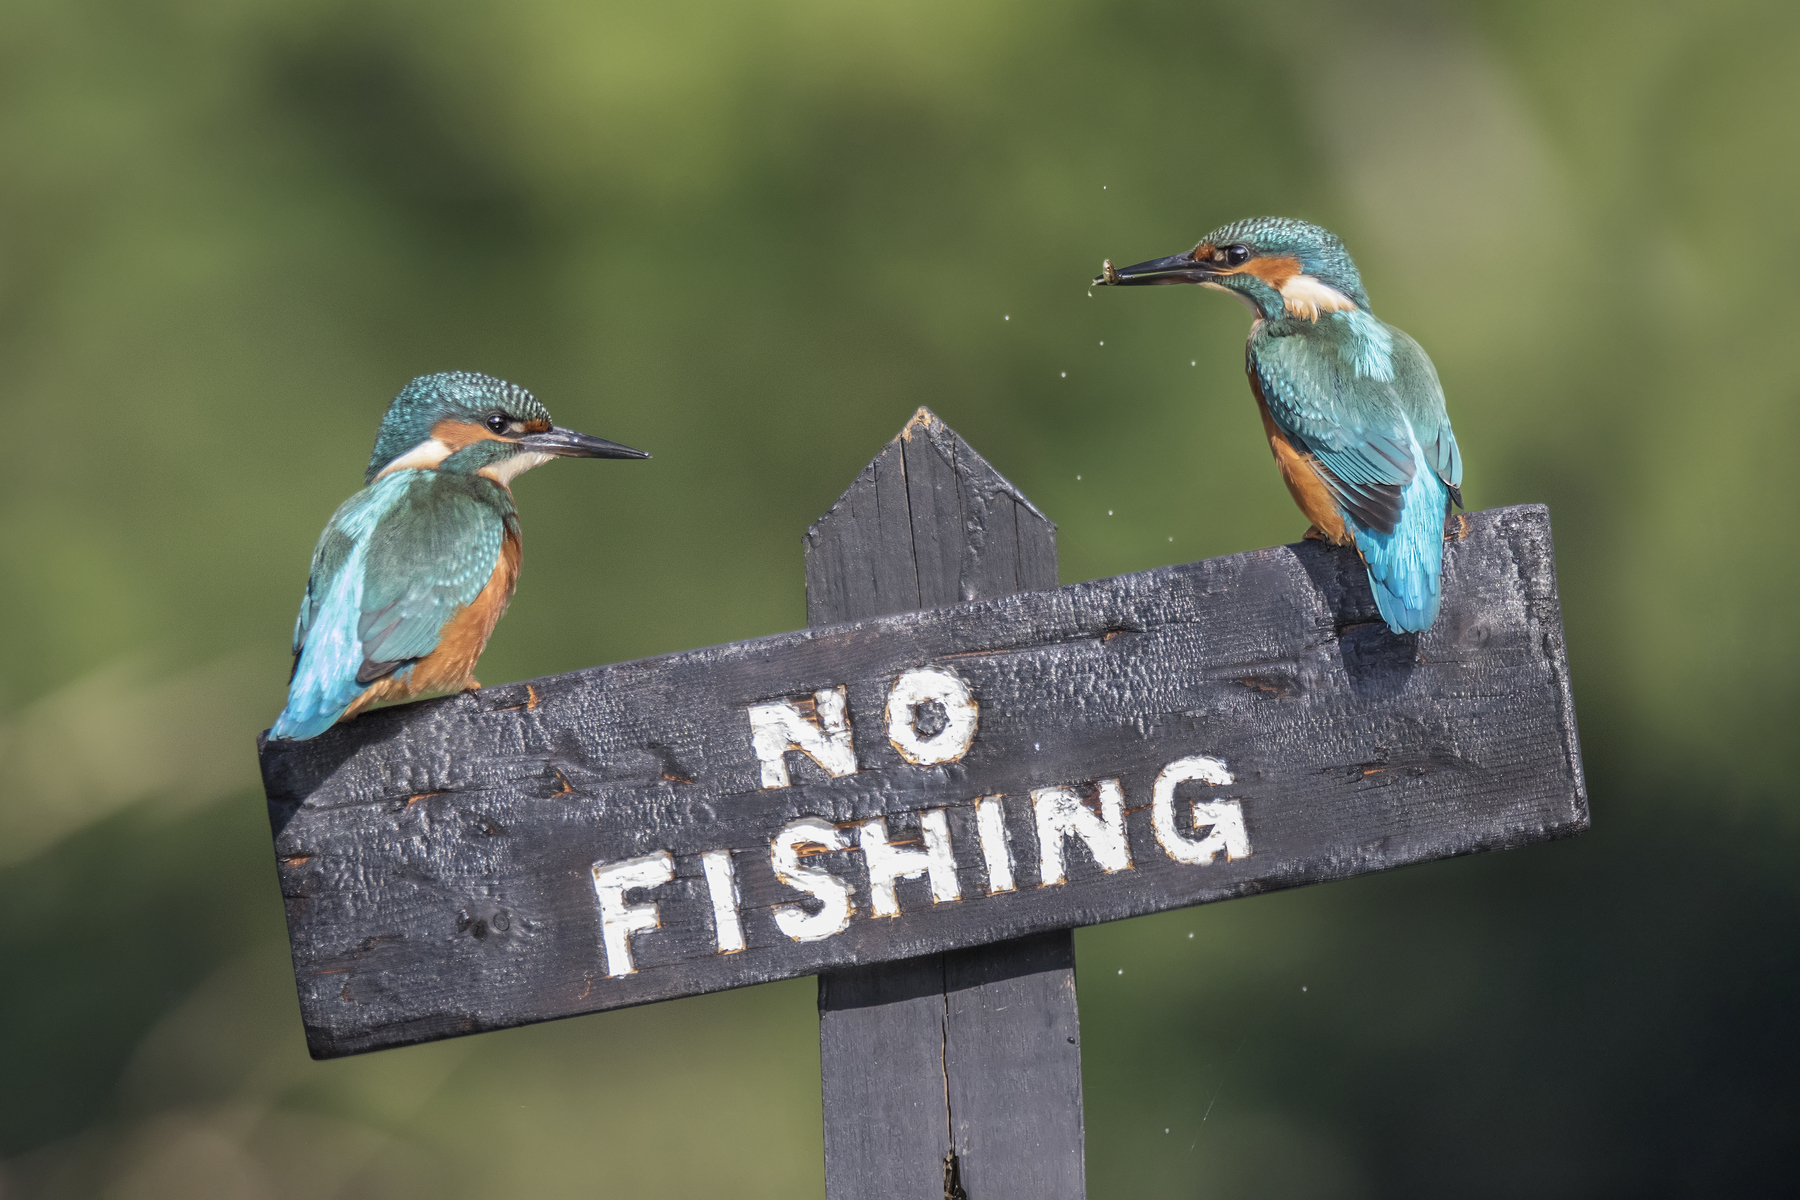 These two kingfishers take no notice of the local fishing rules